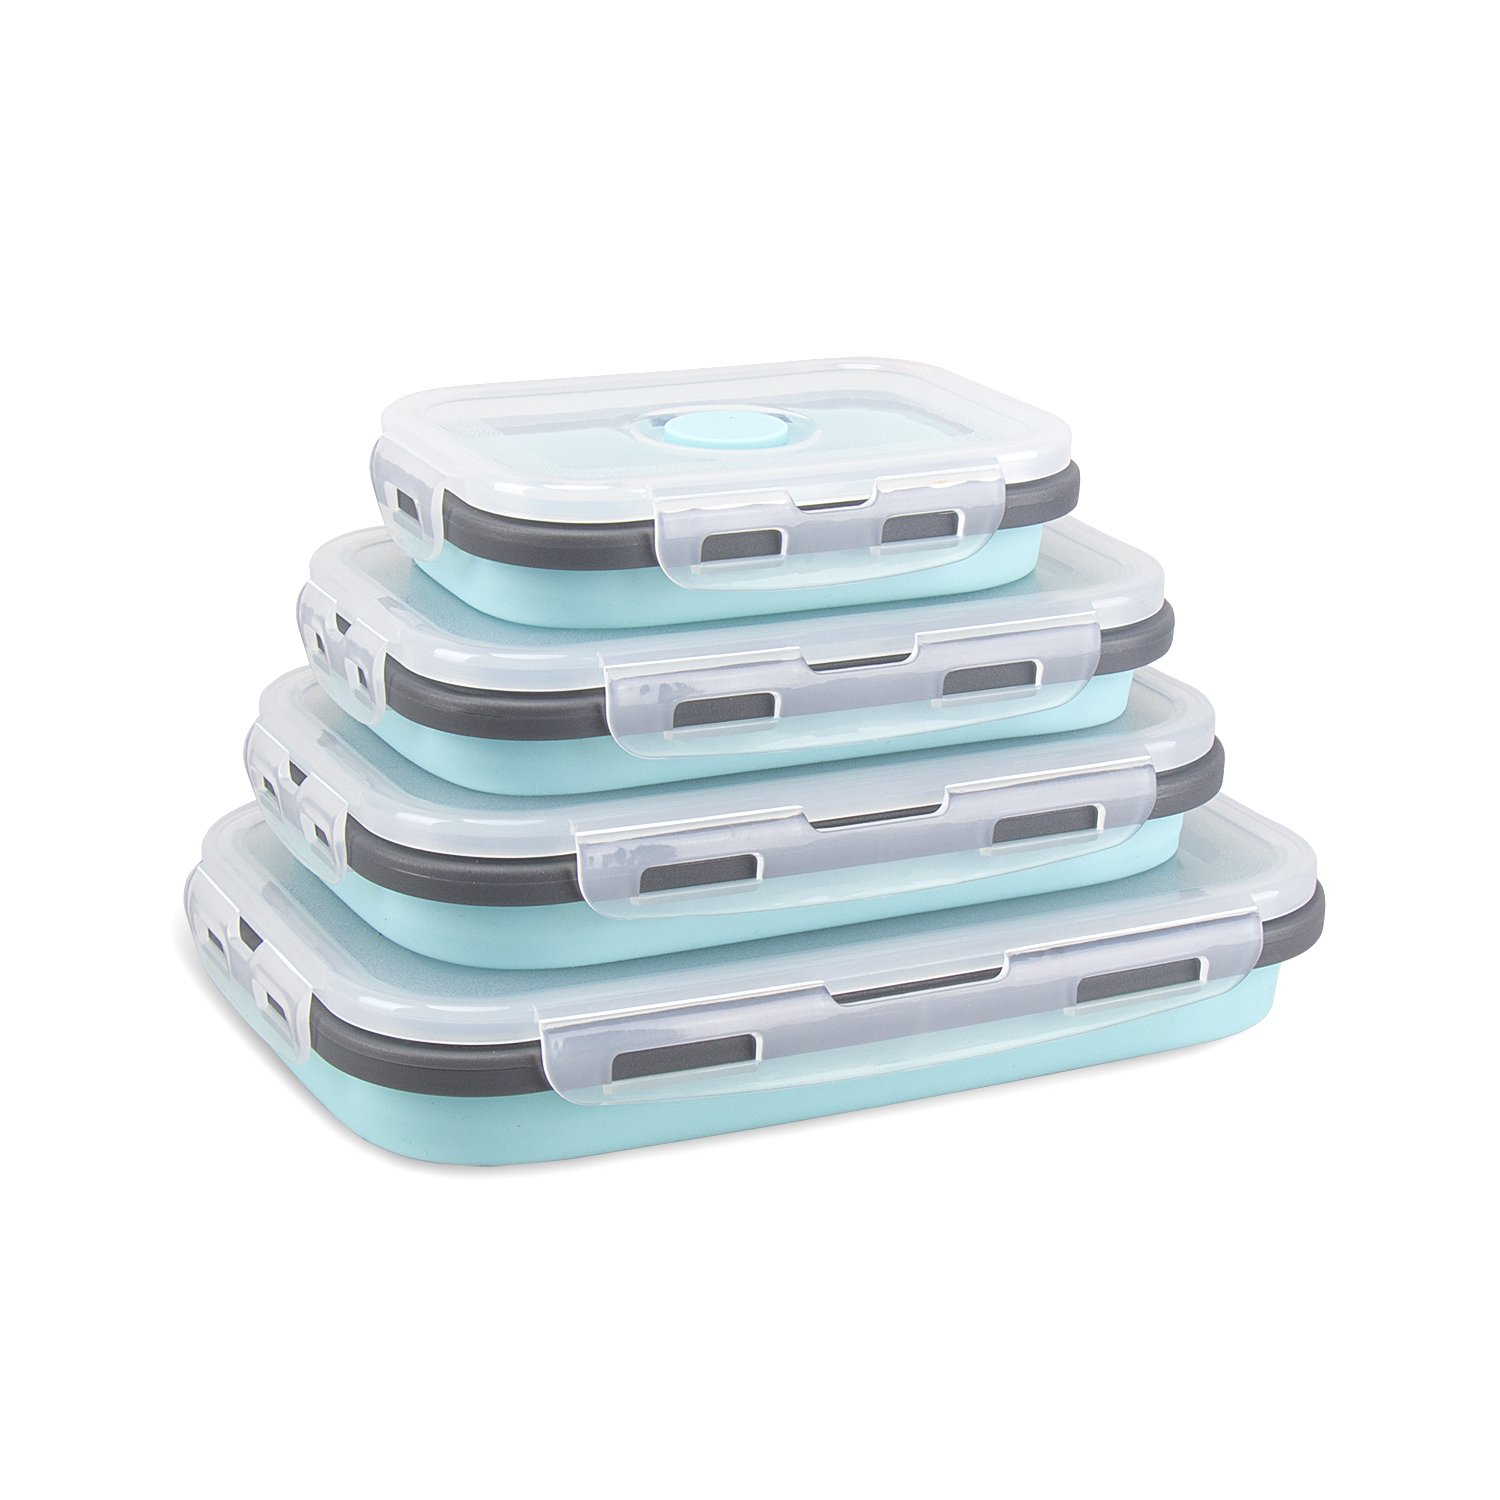 Collapsible Silicone Food Storage Containers 4 Pack Lunch Bento Box BPA Free for Camping, Hiking CP012